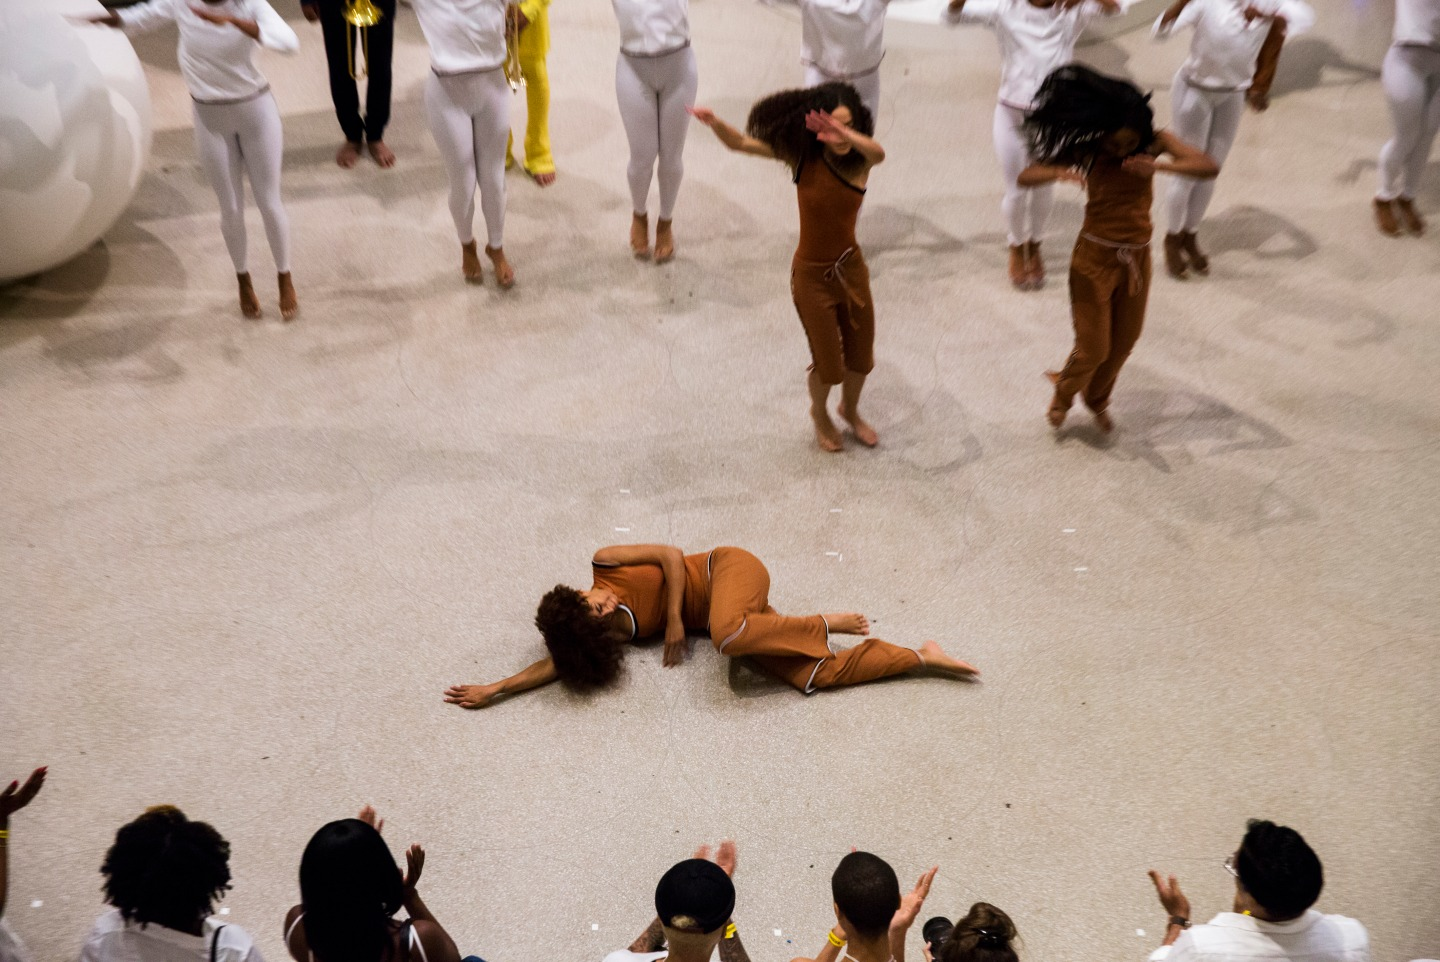 Solange's Live Shows Are A Space For Black Restoration